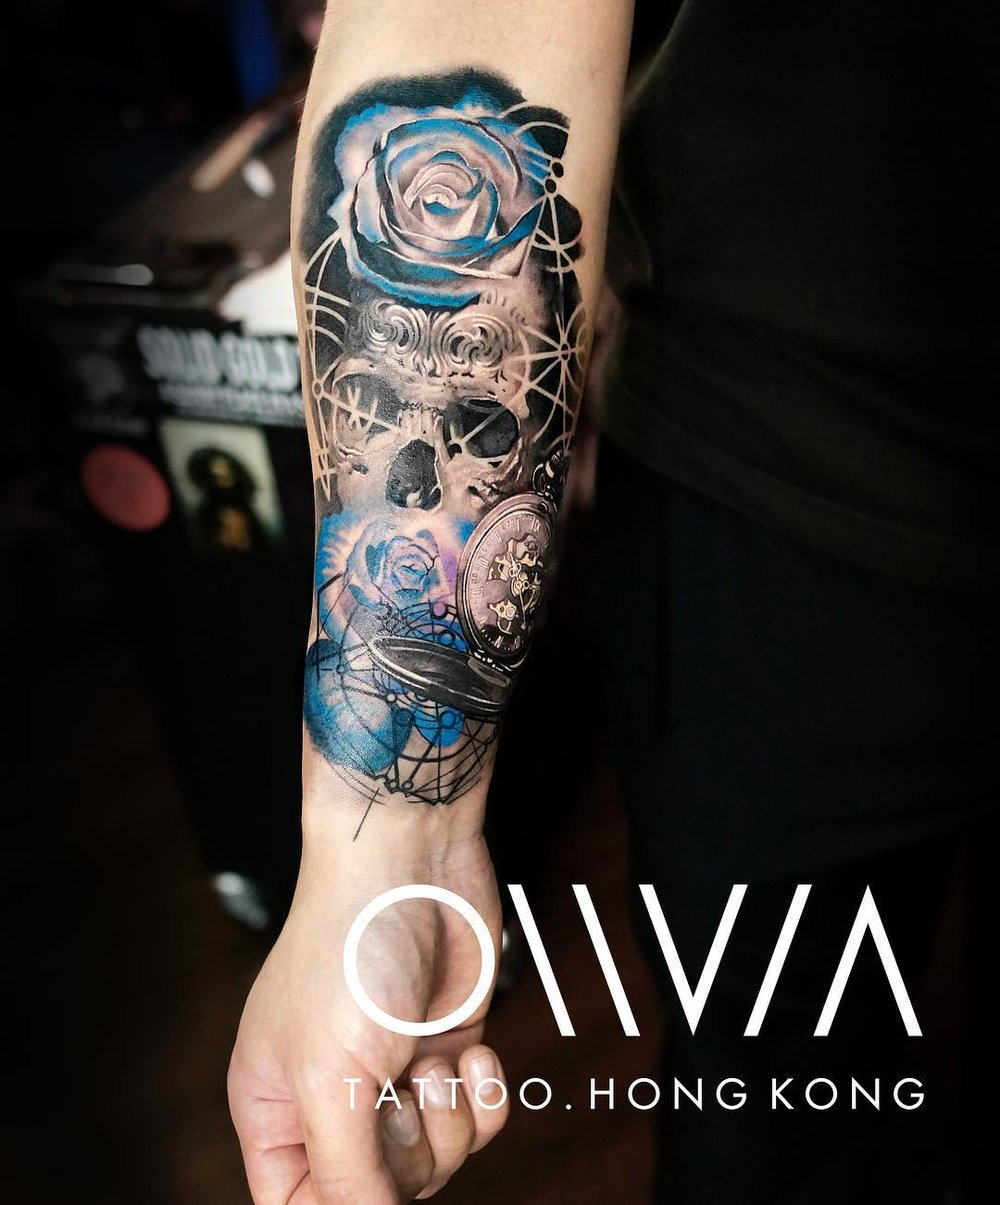 2018-fridays-tattoo-hong-kong-olivia-skull-rose.jpg